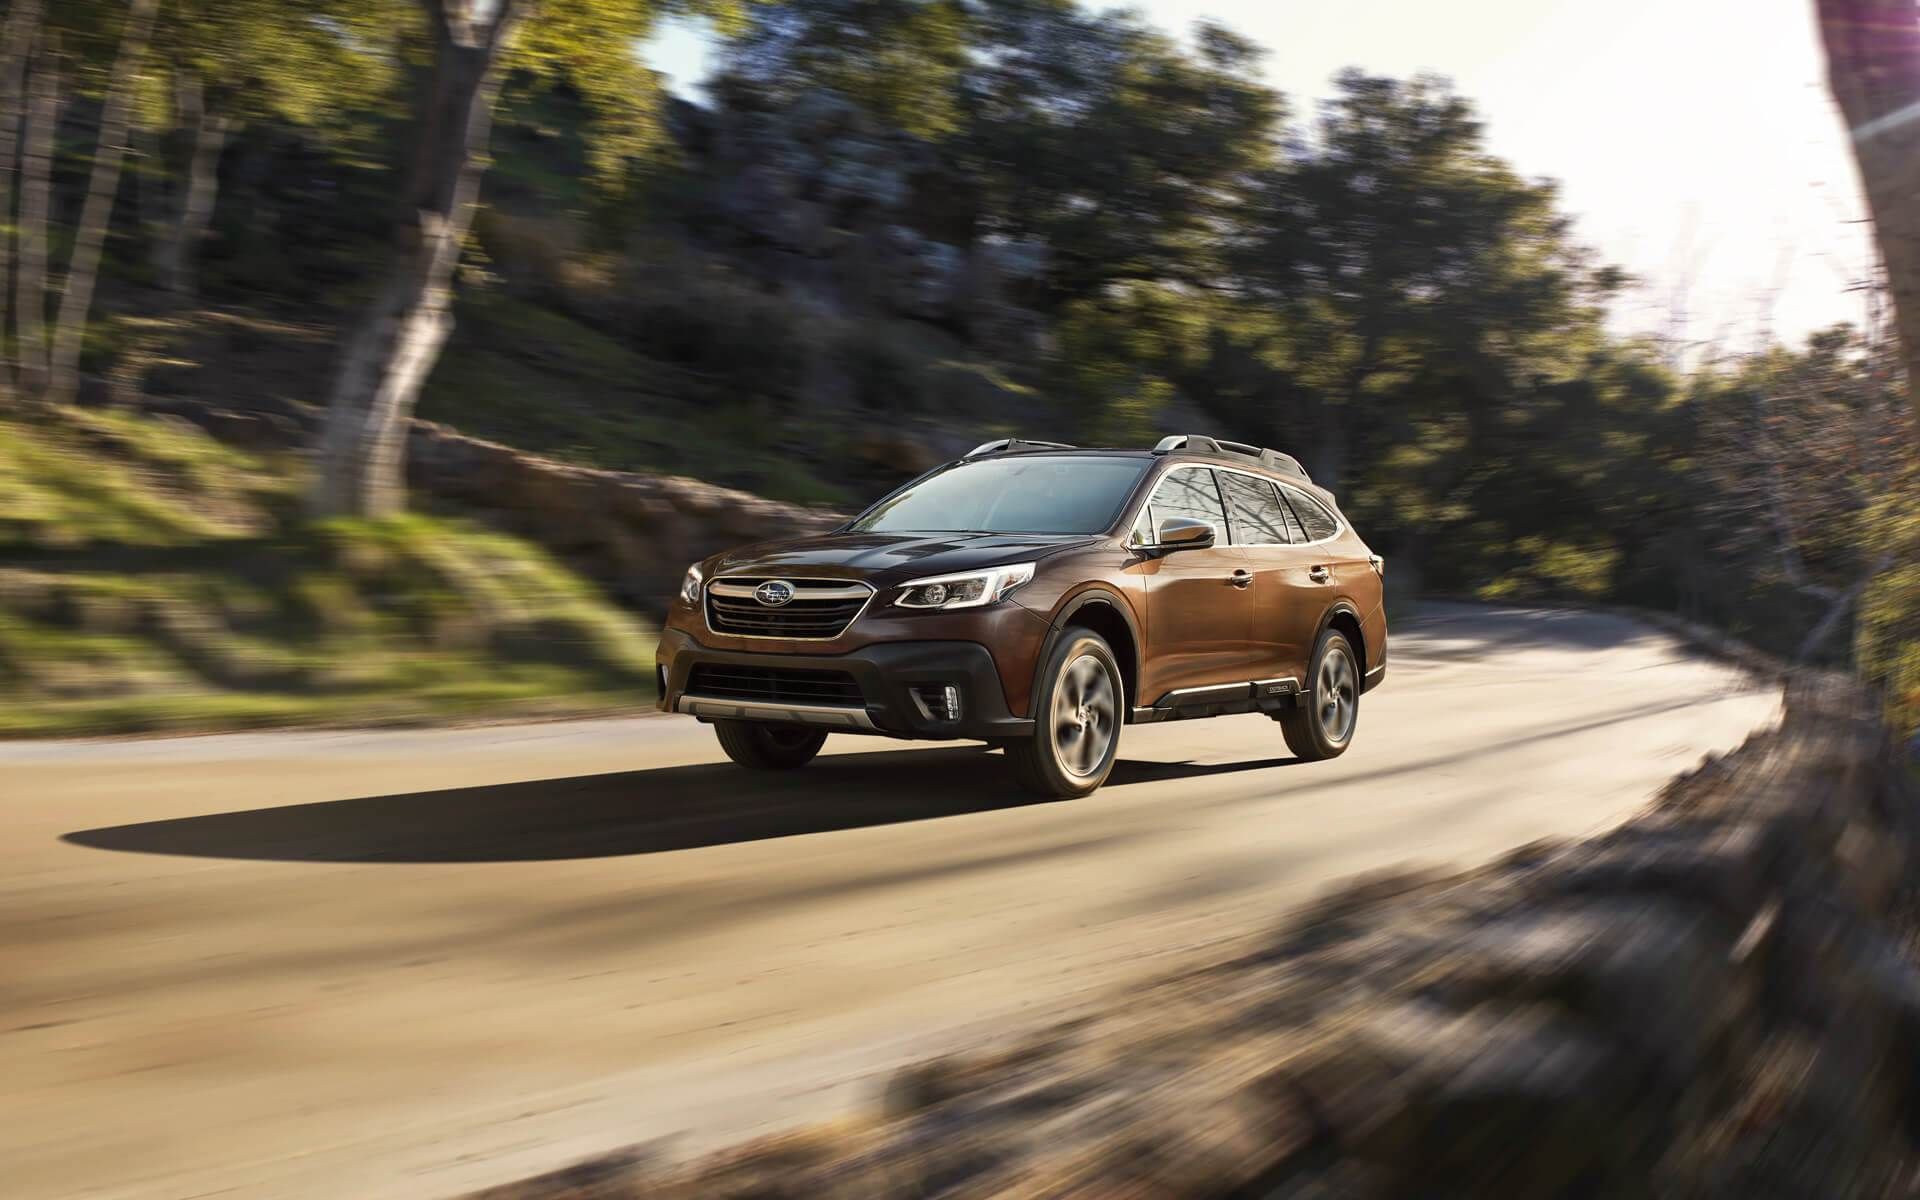 2020 Subaru Outback Front Brown Exterior Picture